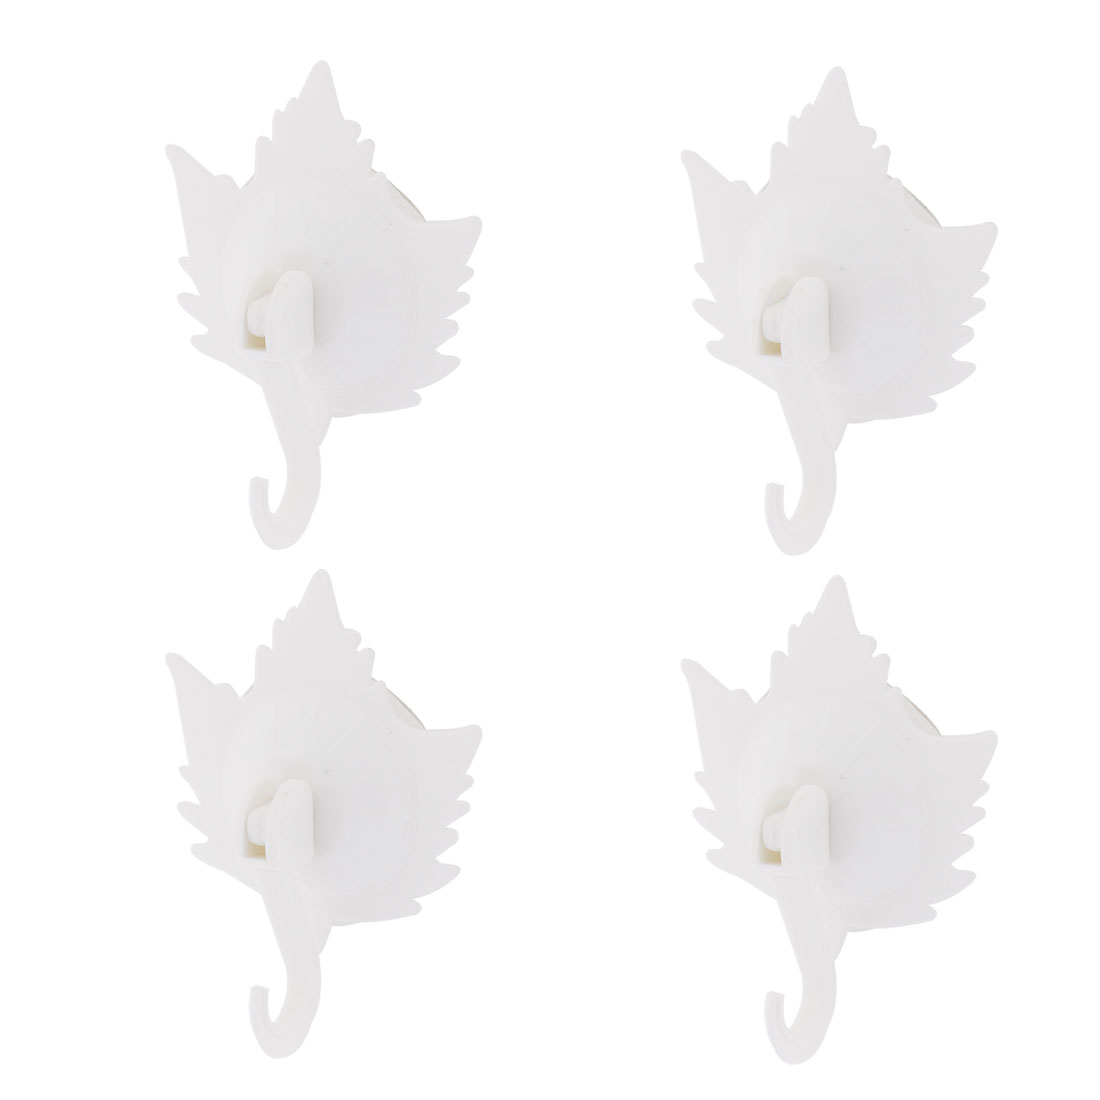 Household Towel Maple Leaf Design Suction Cup Hooks Wall Hangers White 4pcs